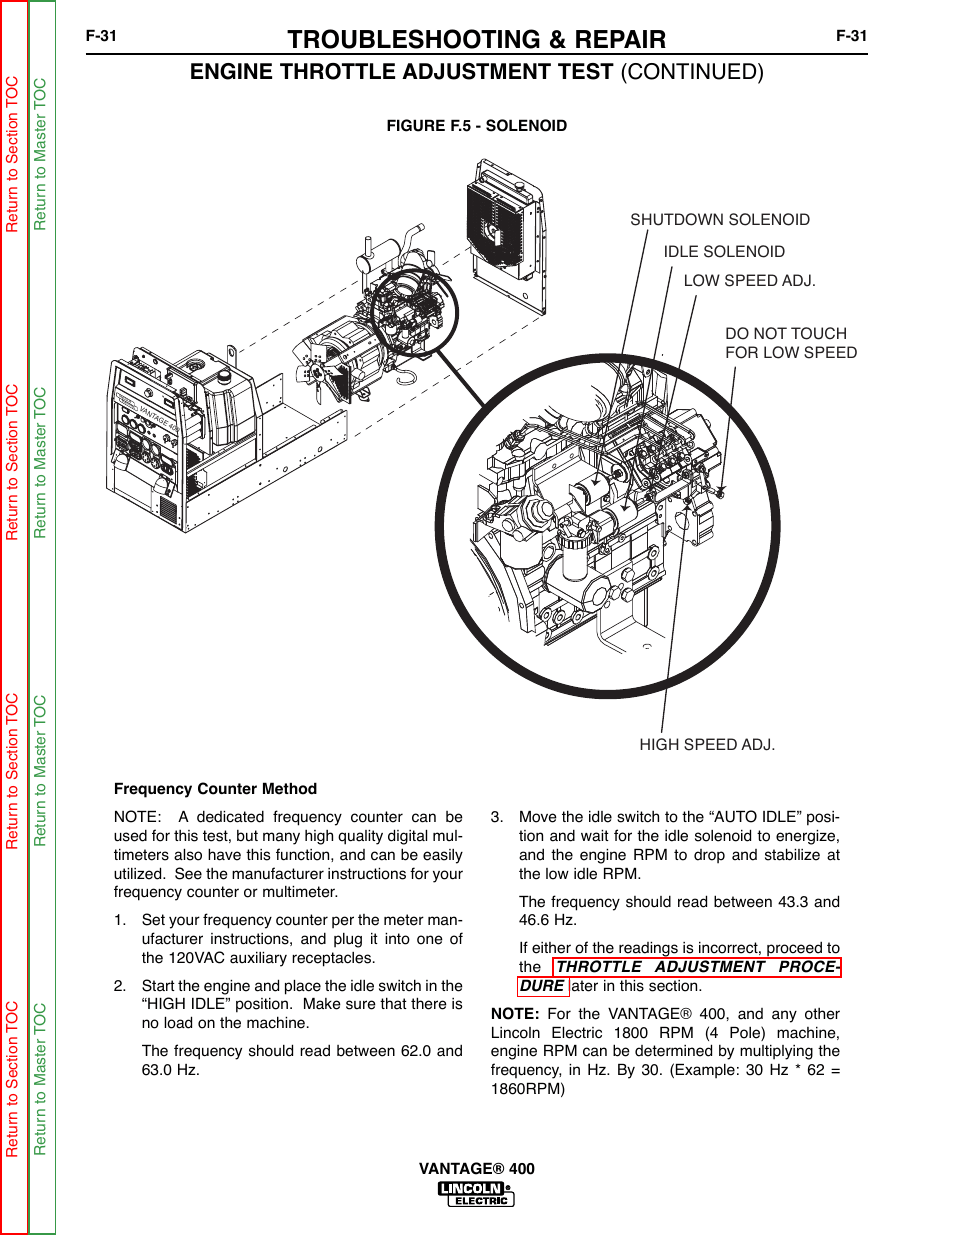 medium resolution of troubleshooting repair engine throttle adjustment test continued lincoln electric vantage 400 user manual page 79 166